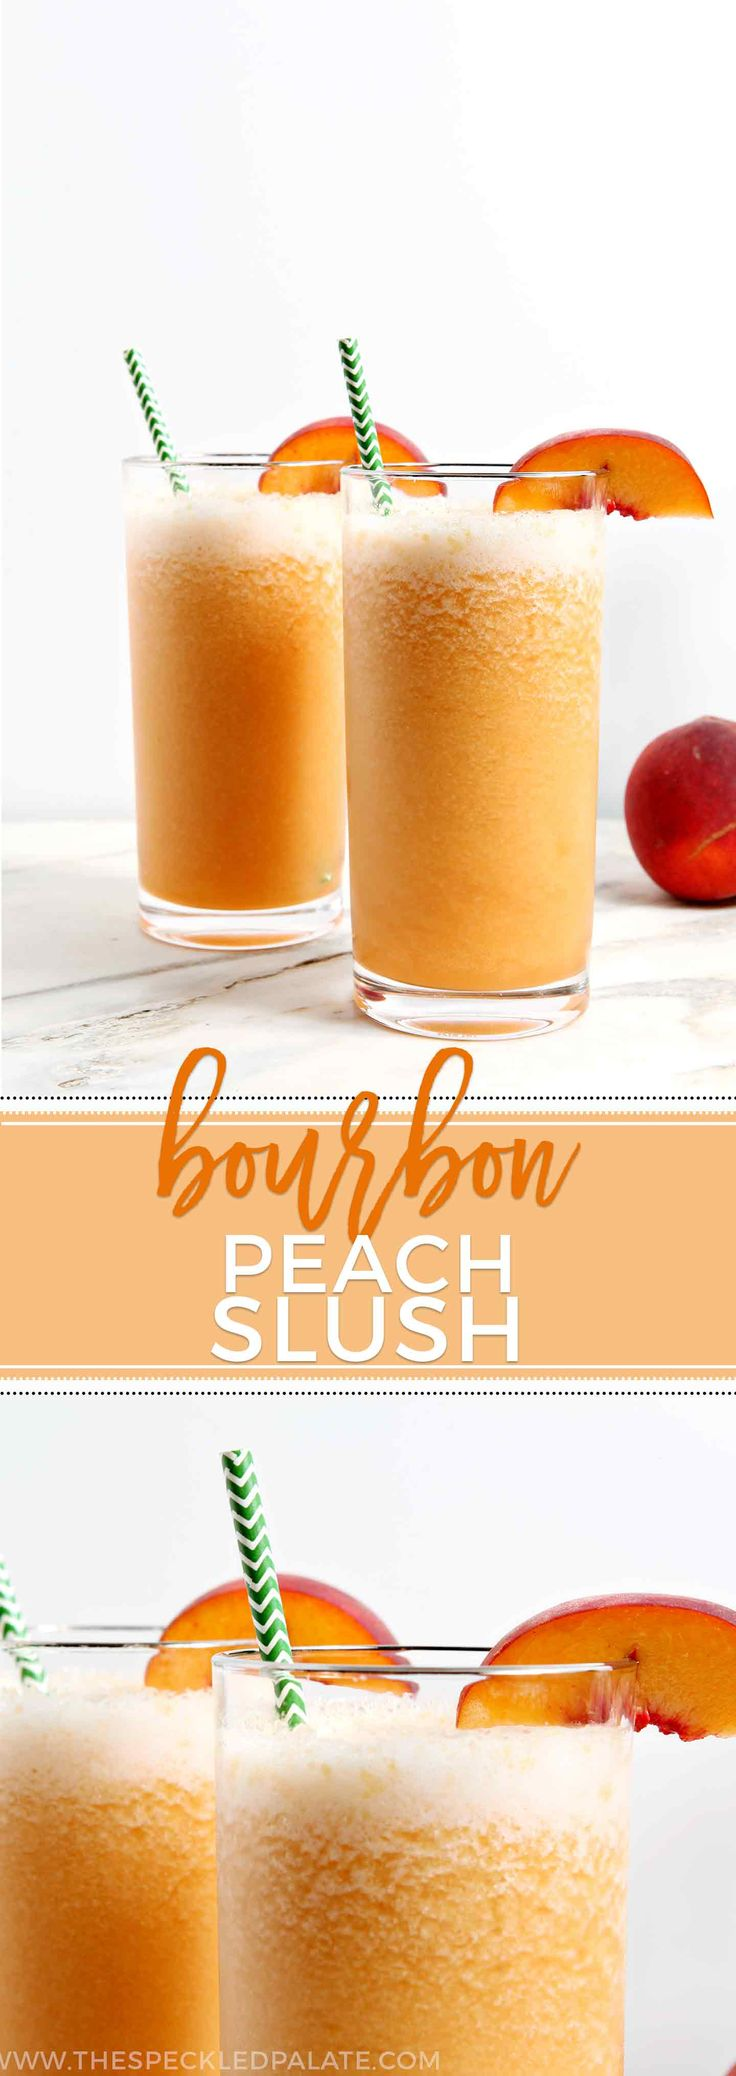 Celebrate peach season with a refreshing Bourbon Peach Slush. Simple to make and easier to sip, this frozen cocktail is perfect for an end-of-summer party. #recipe #cocktail #bourbon via @speckledpalate